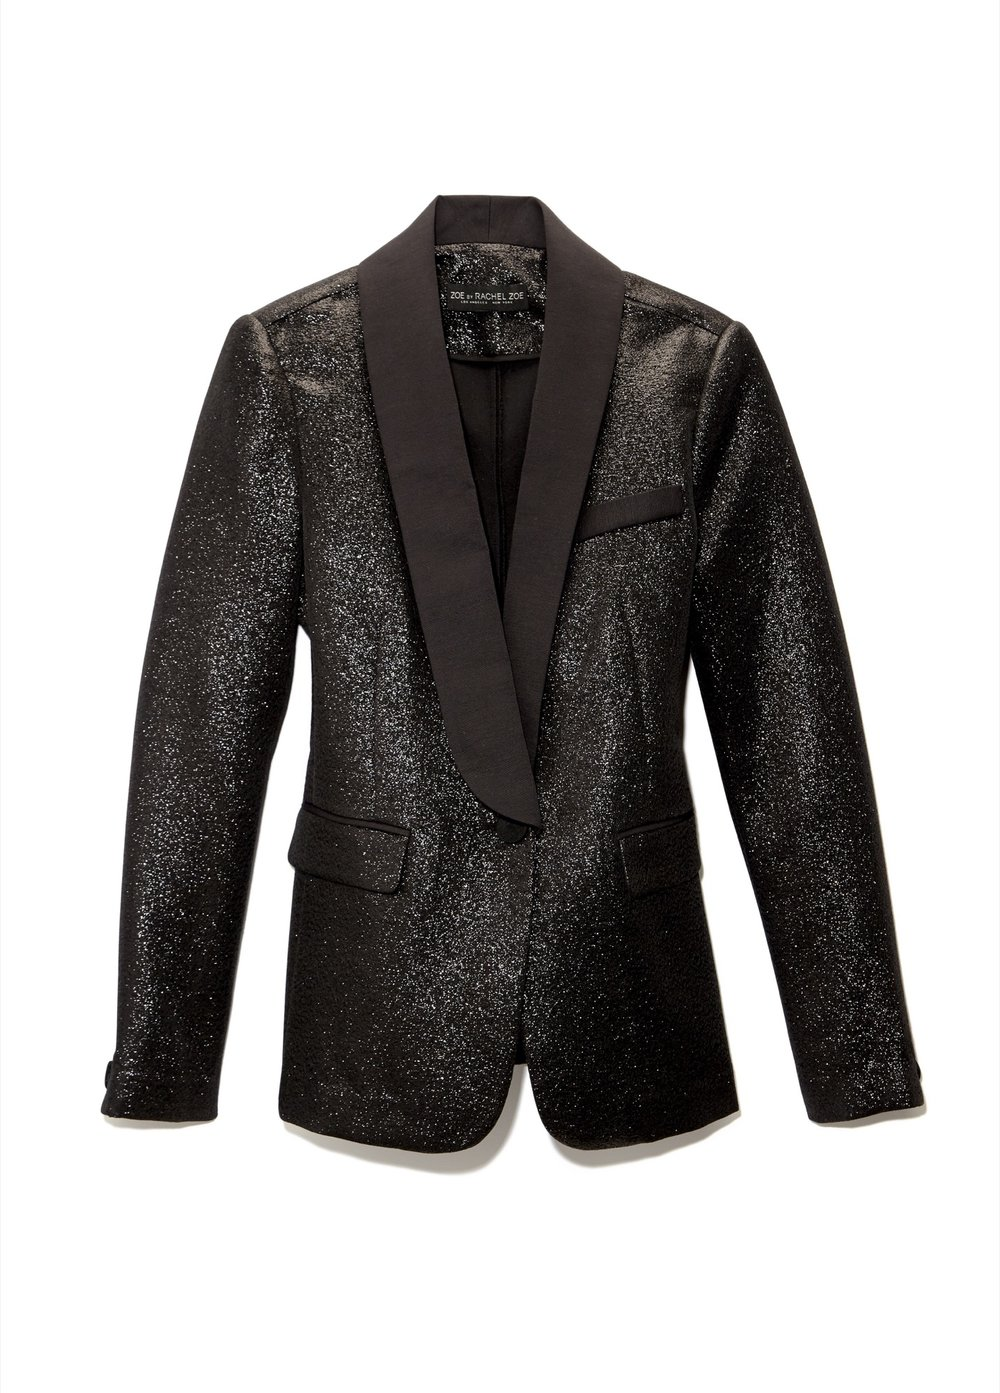 ZOEBYRACHELZOE_CREATED FOR MACYS_ARIA JACKET_$159.jpg